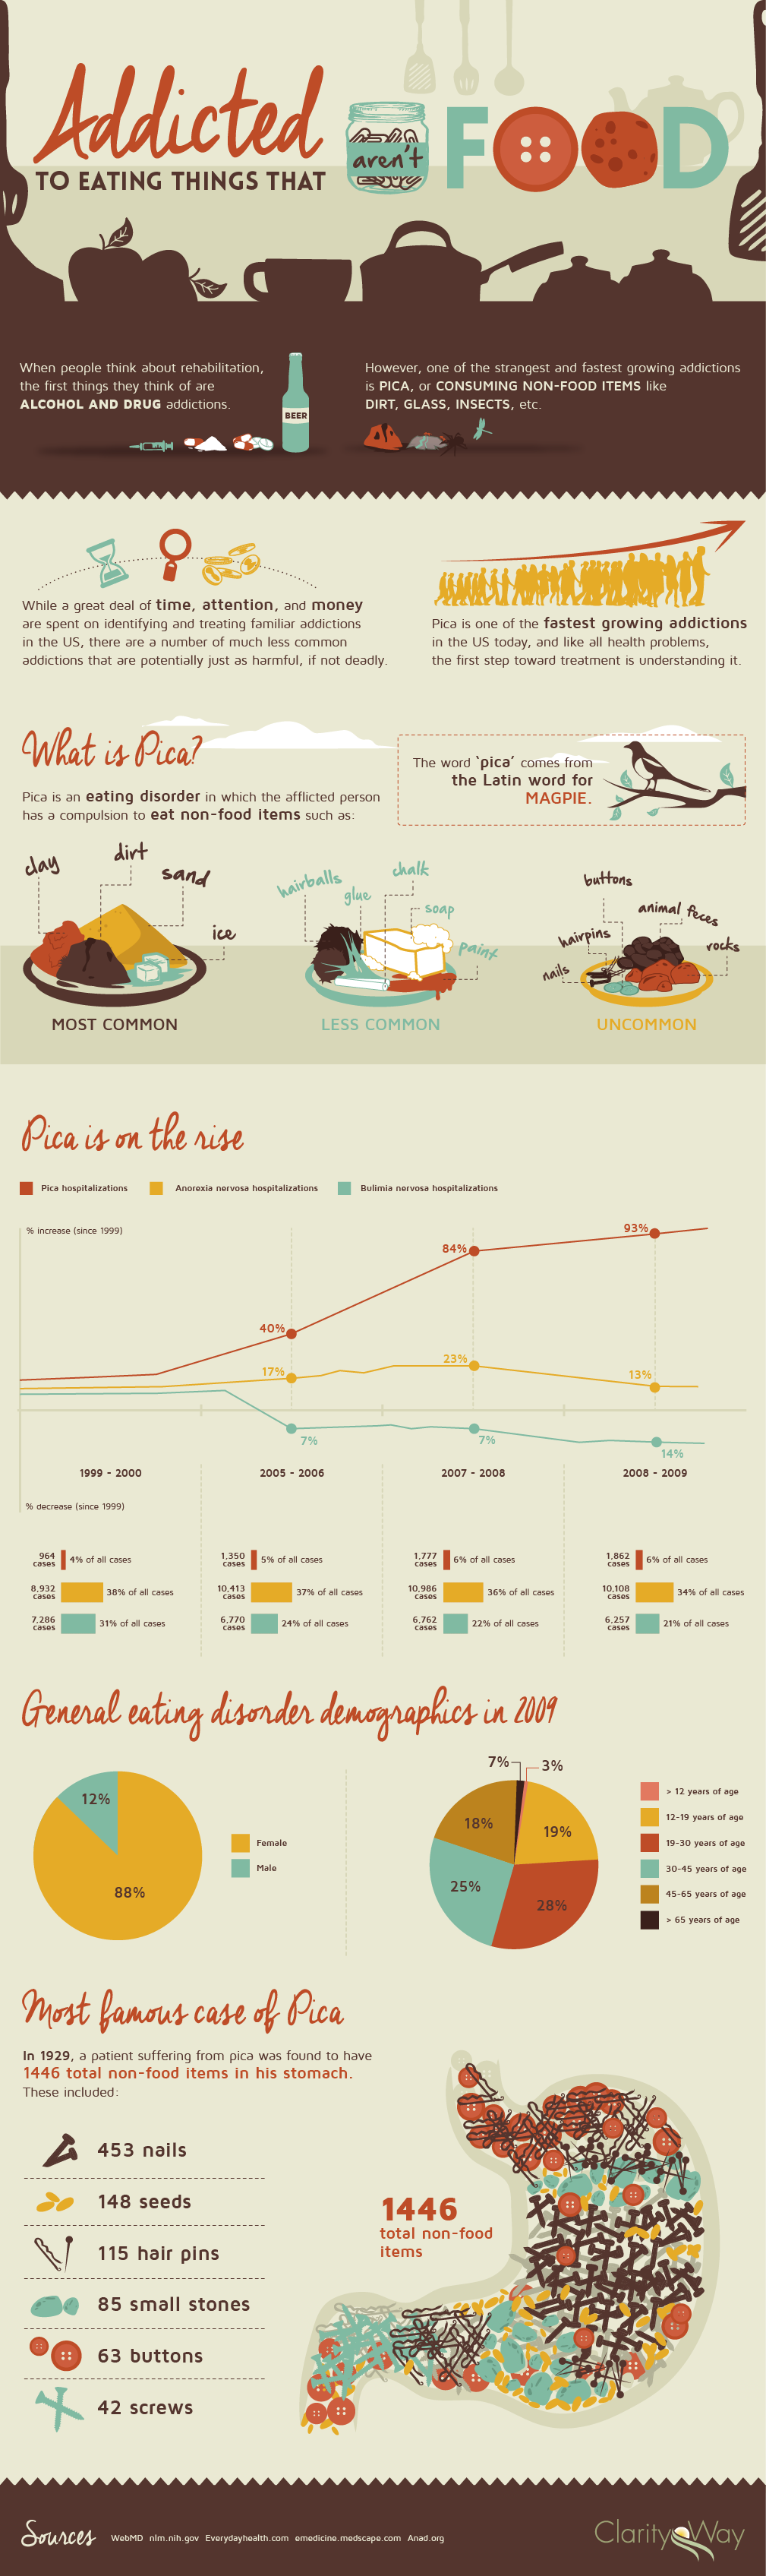 Infographic showing the increasing prevalence of Pica Disorder